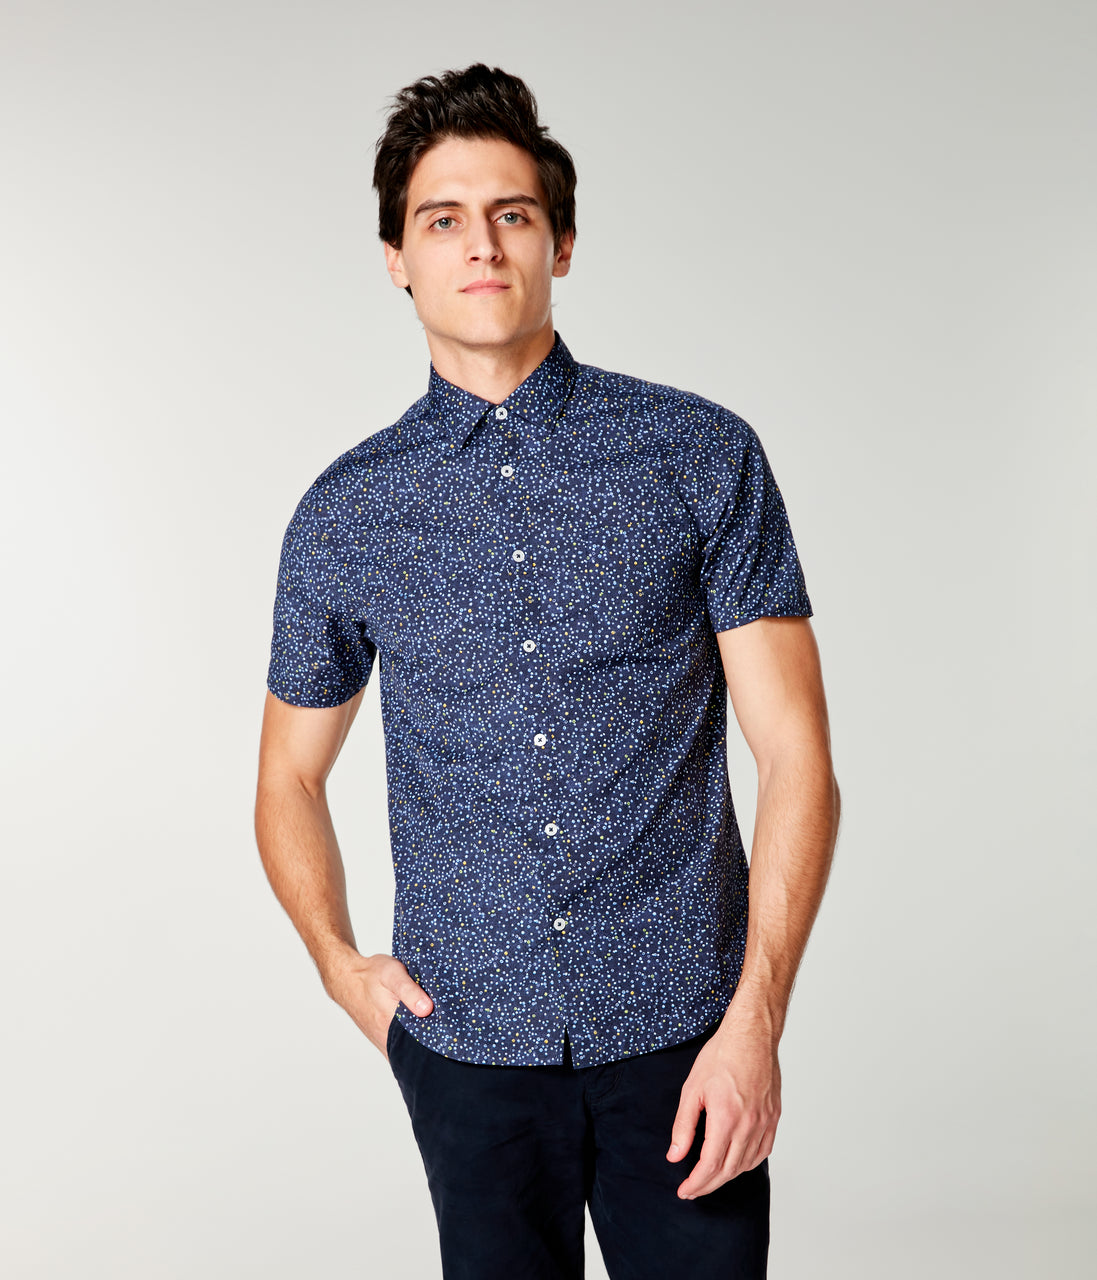 Woven On-Point Shirt - Blue Topaz Micro Dot - Good Man Brand - On-Point Print Shirt Short Sleeve - Blue Topaz Micro Dot